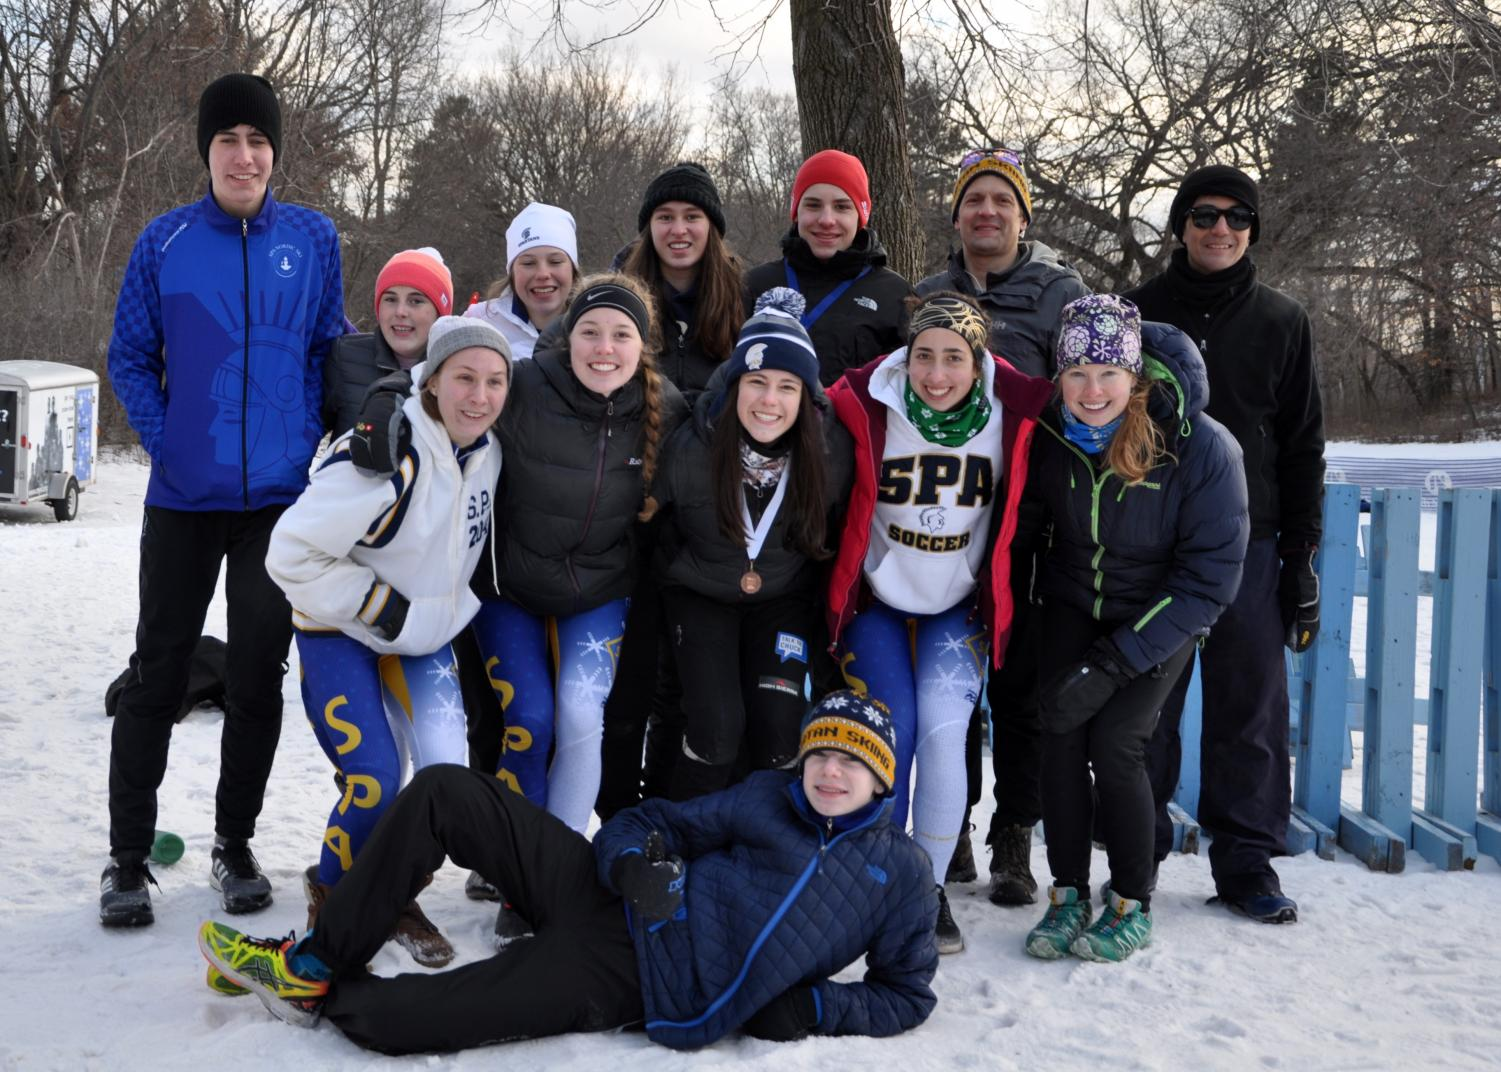 """SOCCER OR SKI? In between races, the Nordic Ski team is known to play games as a group: """"We like to play ski soccer,"""" captain Val Hart said, where we just basically play soccer in our ski boots and it's very amusing."""""""